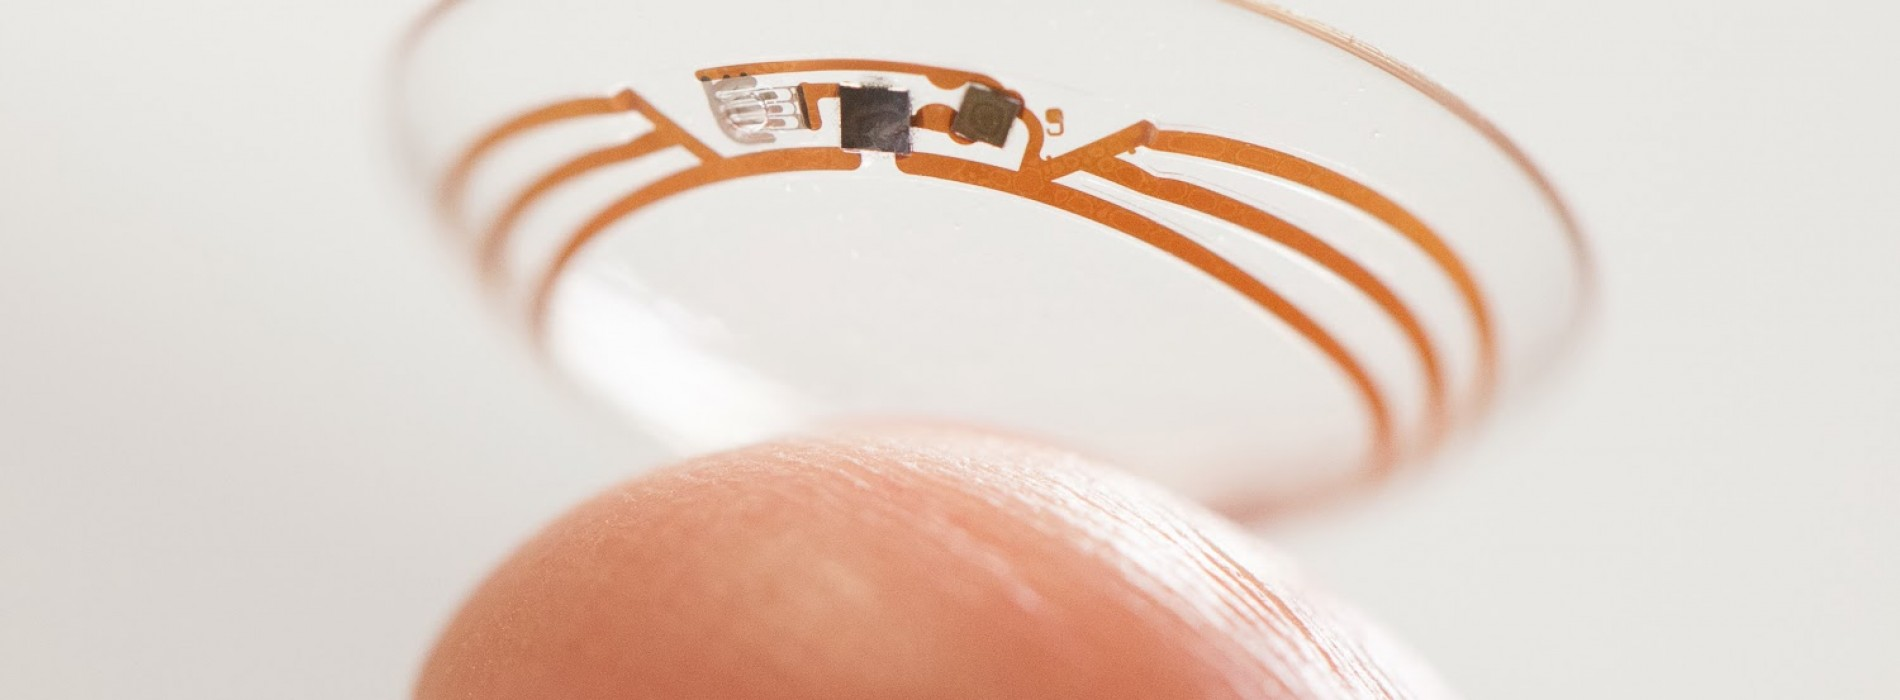 Google working on smart contact lens to aide diabetics